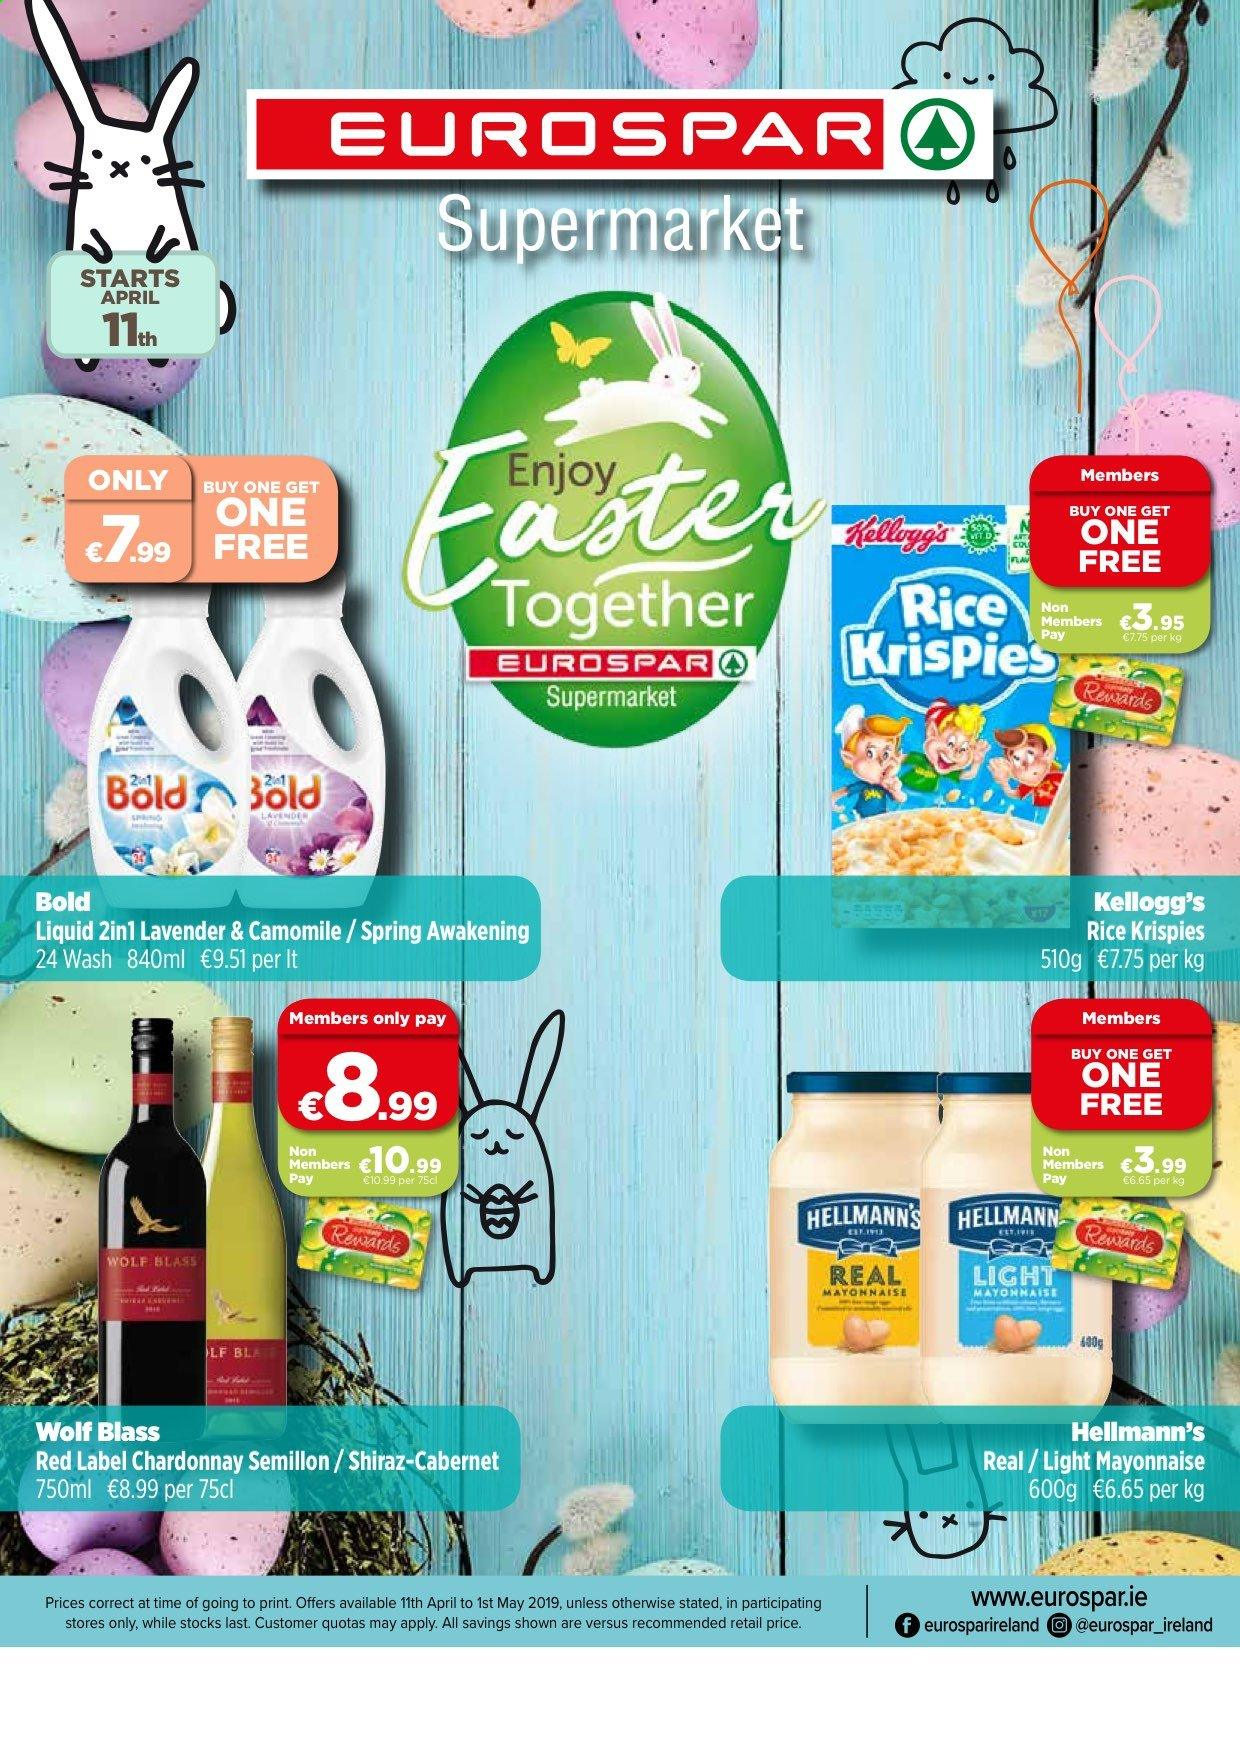 EUROSPAR offer  - 11.4.2019 - 1.5.2019 - Sales products - mayonnaise, rice, chardonnay. Page 1.